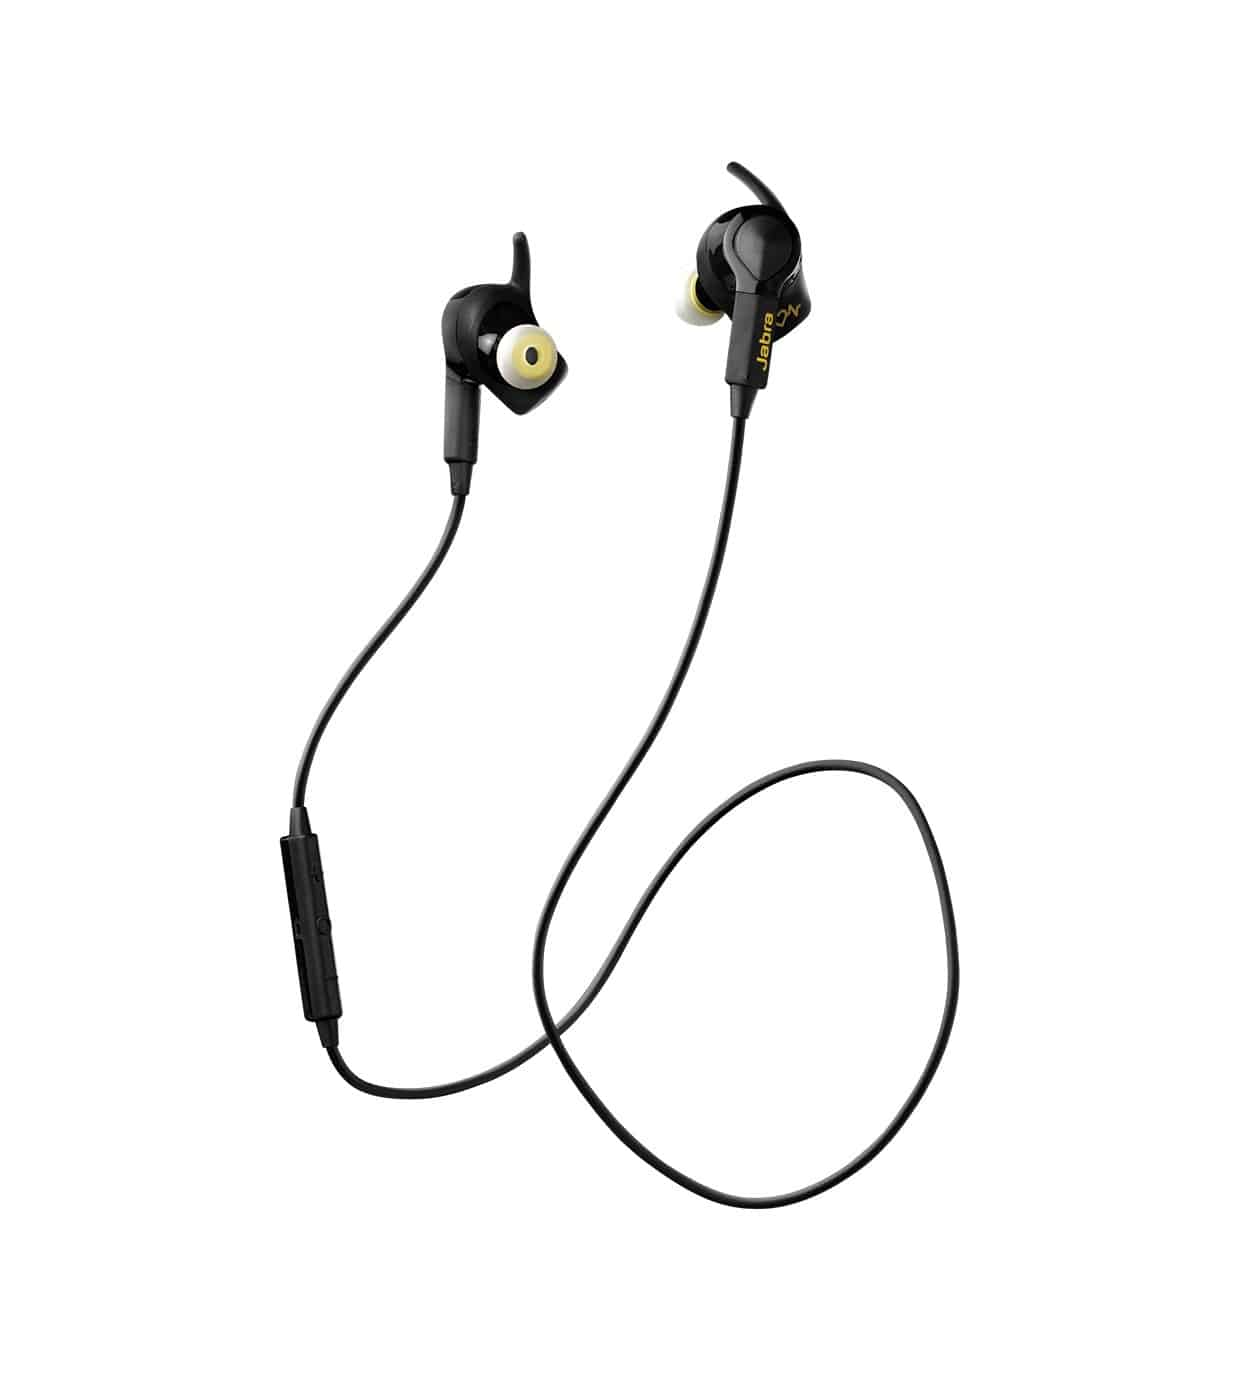 Jabra Wireless Bluetooth Earbuds Heart Rate Monitor Review